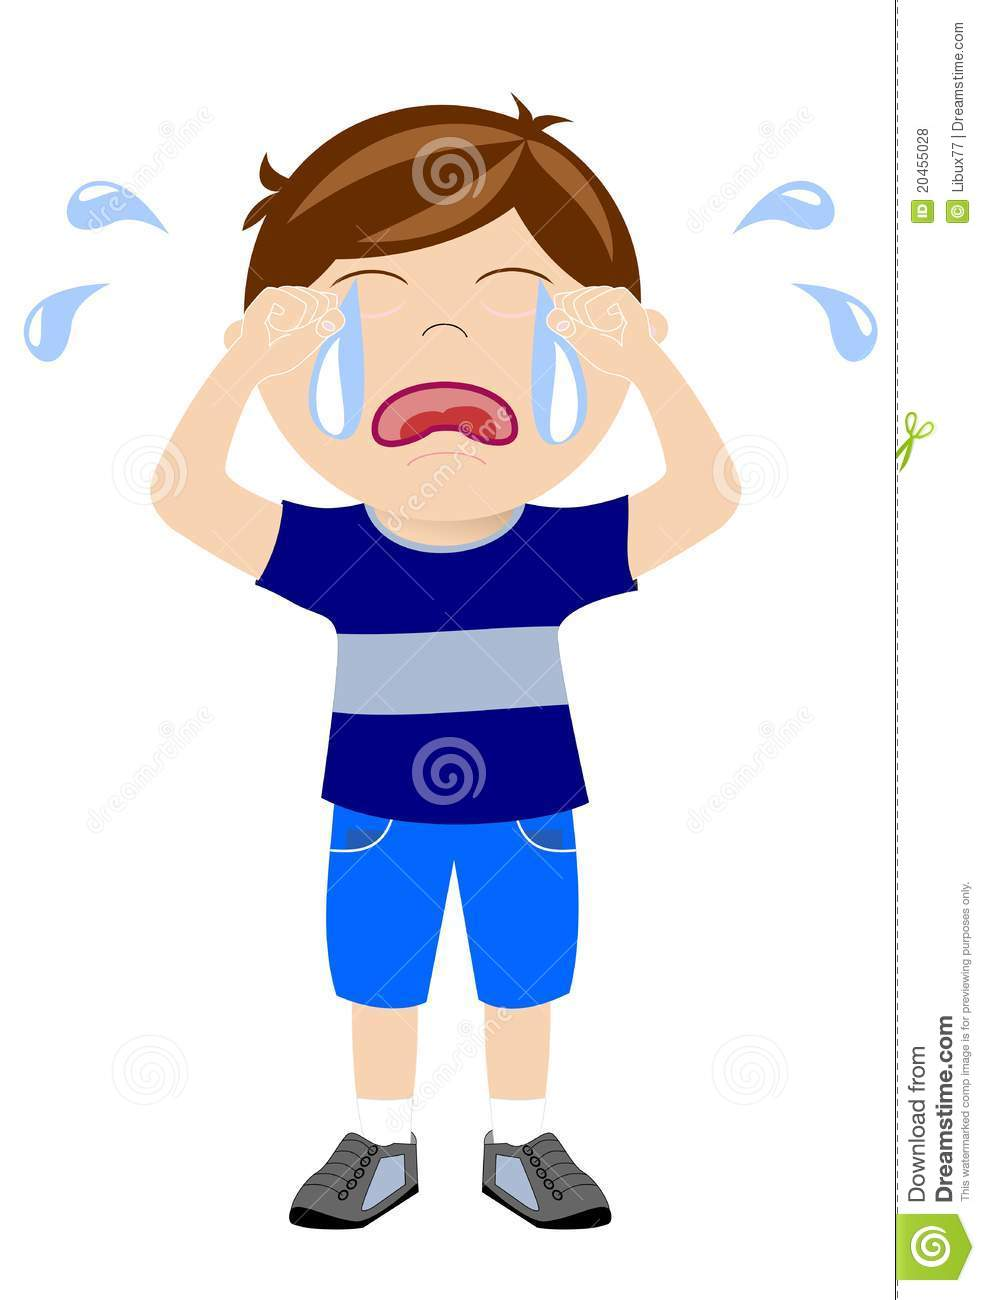 Free download best on. Cry clipart cartoon boy